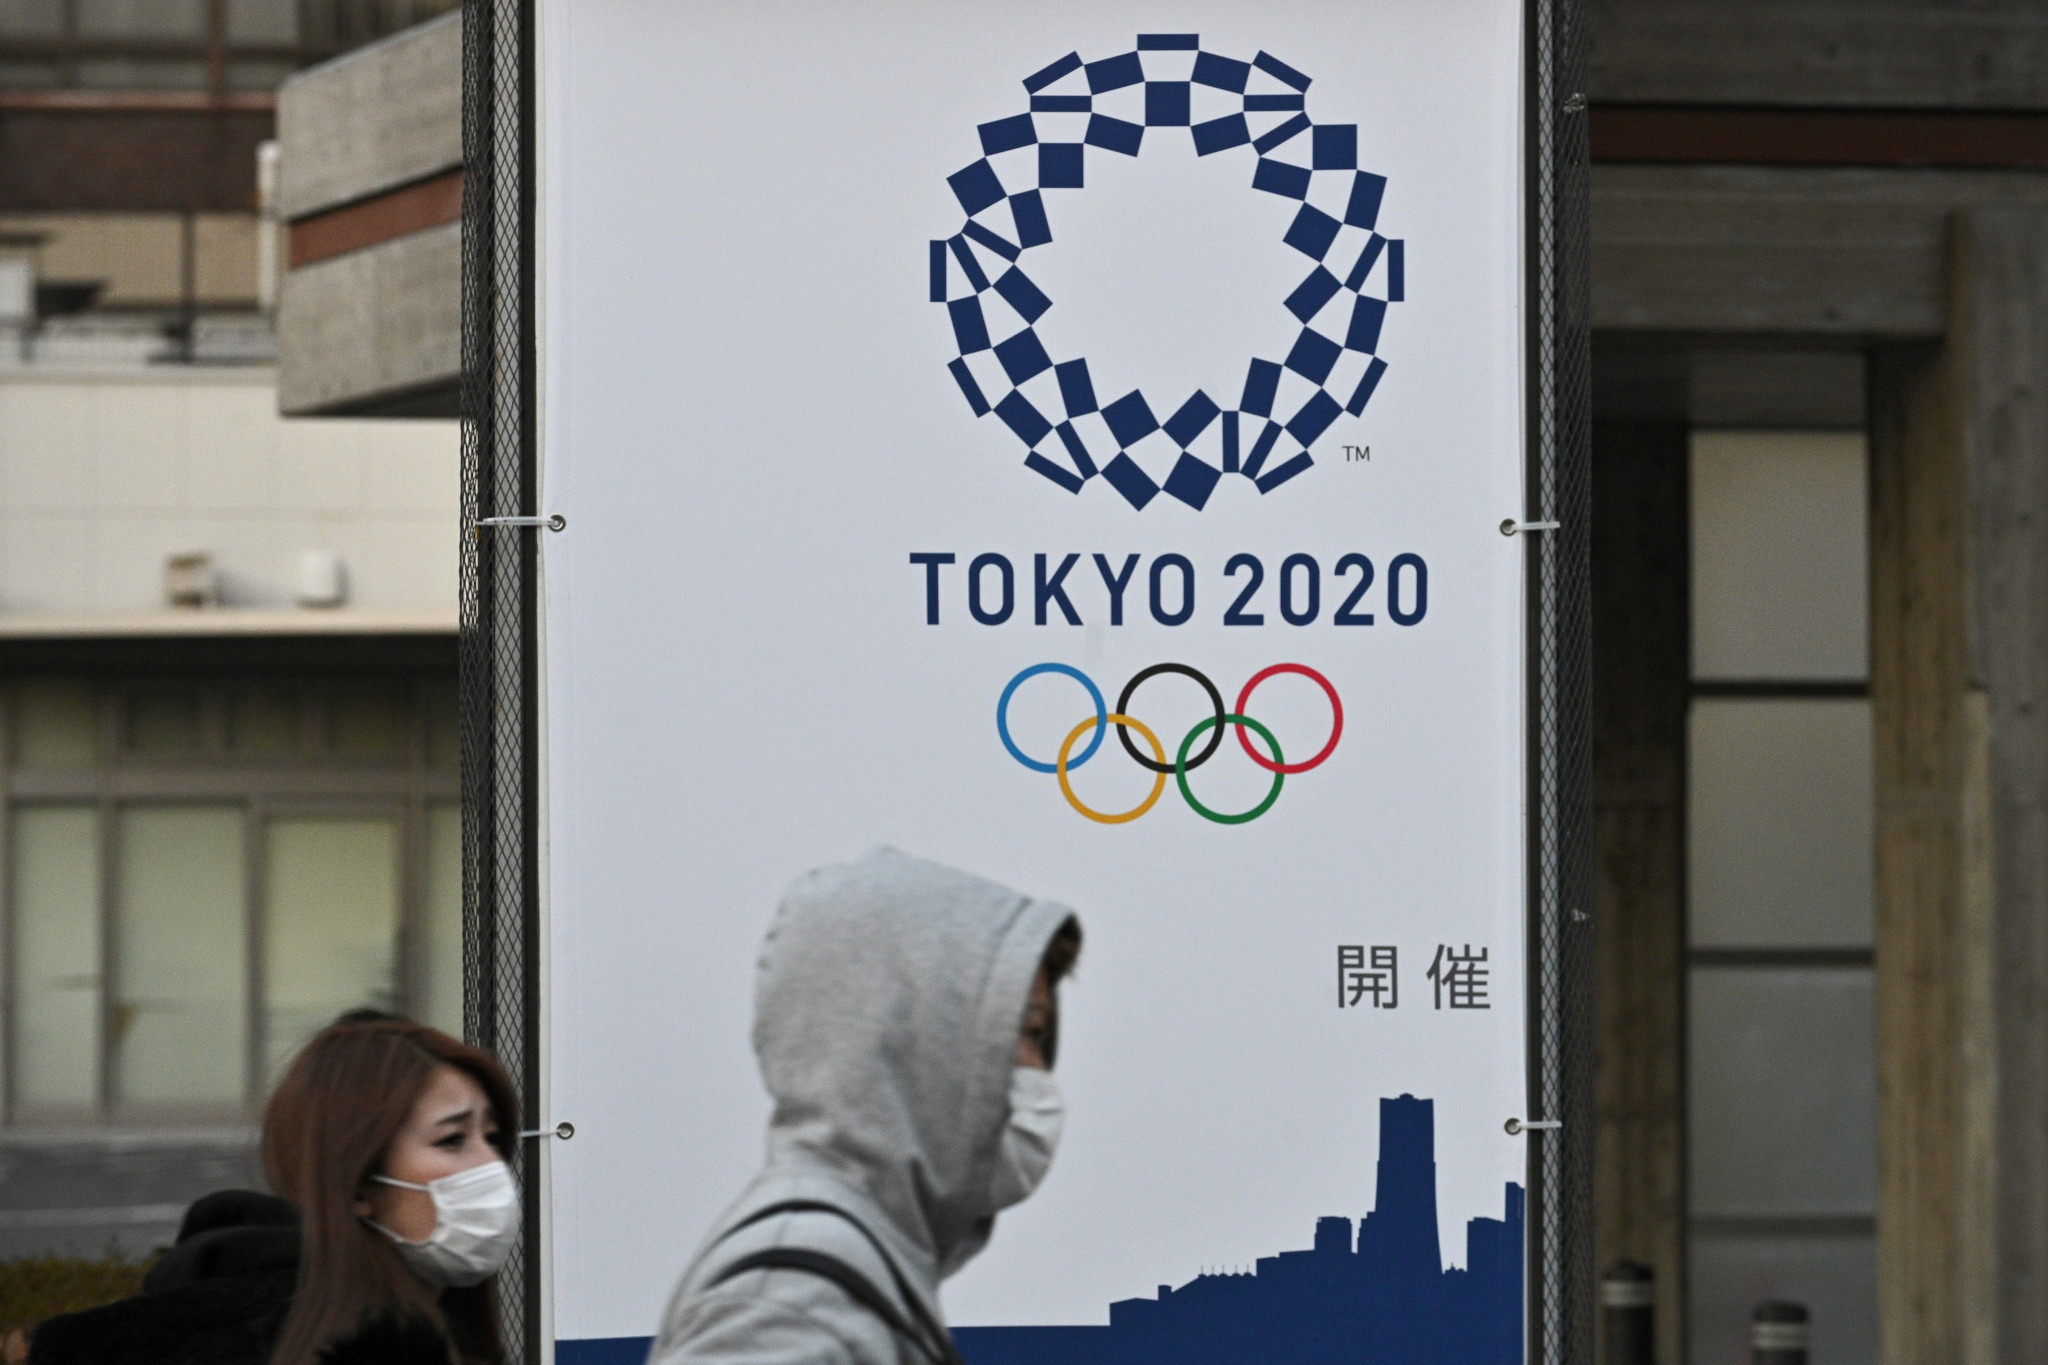 Advisor for Tokyo 2020 believes decision on Olympics must be made by end of March